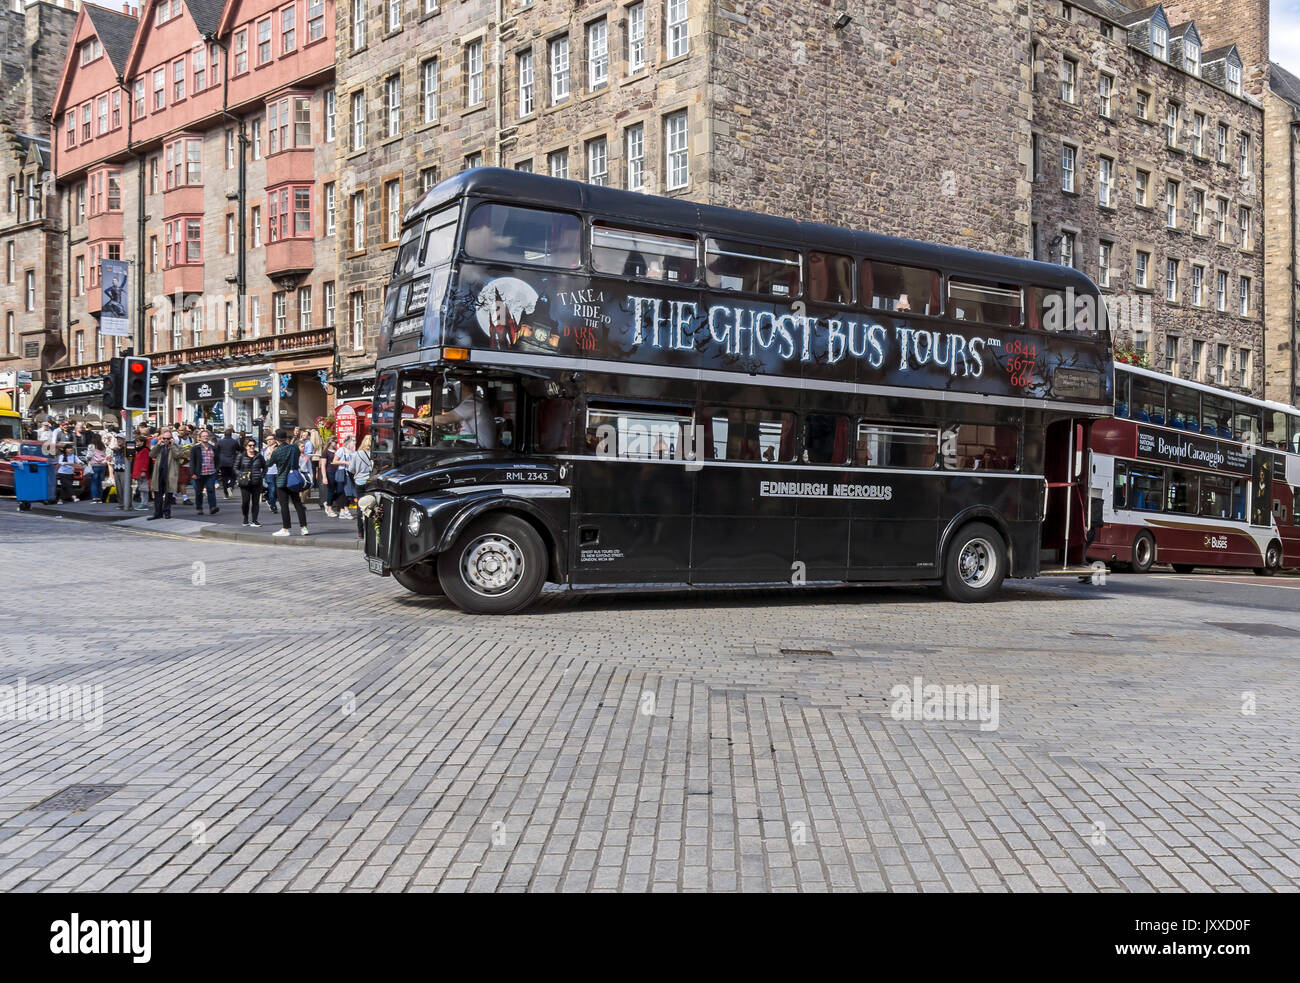 The Ghost Bus Tours bus is turning into Lawnmarket from Bank Street during Edinburgh Festival Fringe 2017 Edinburgh Scotland UK - Stock Image